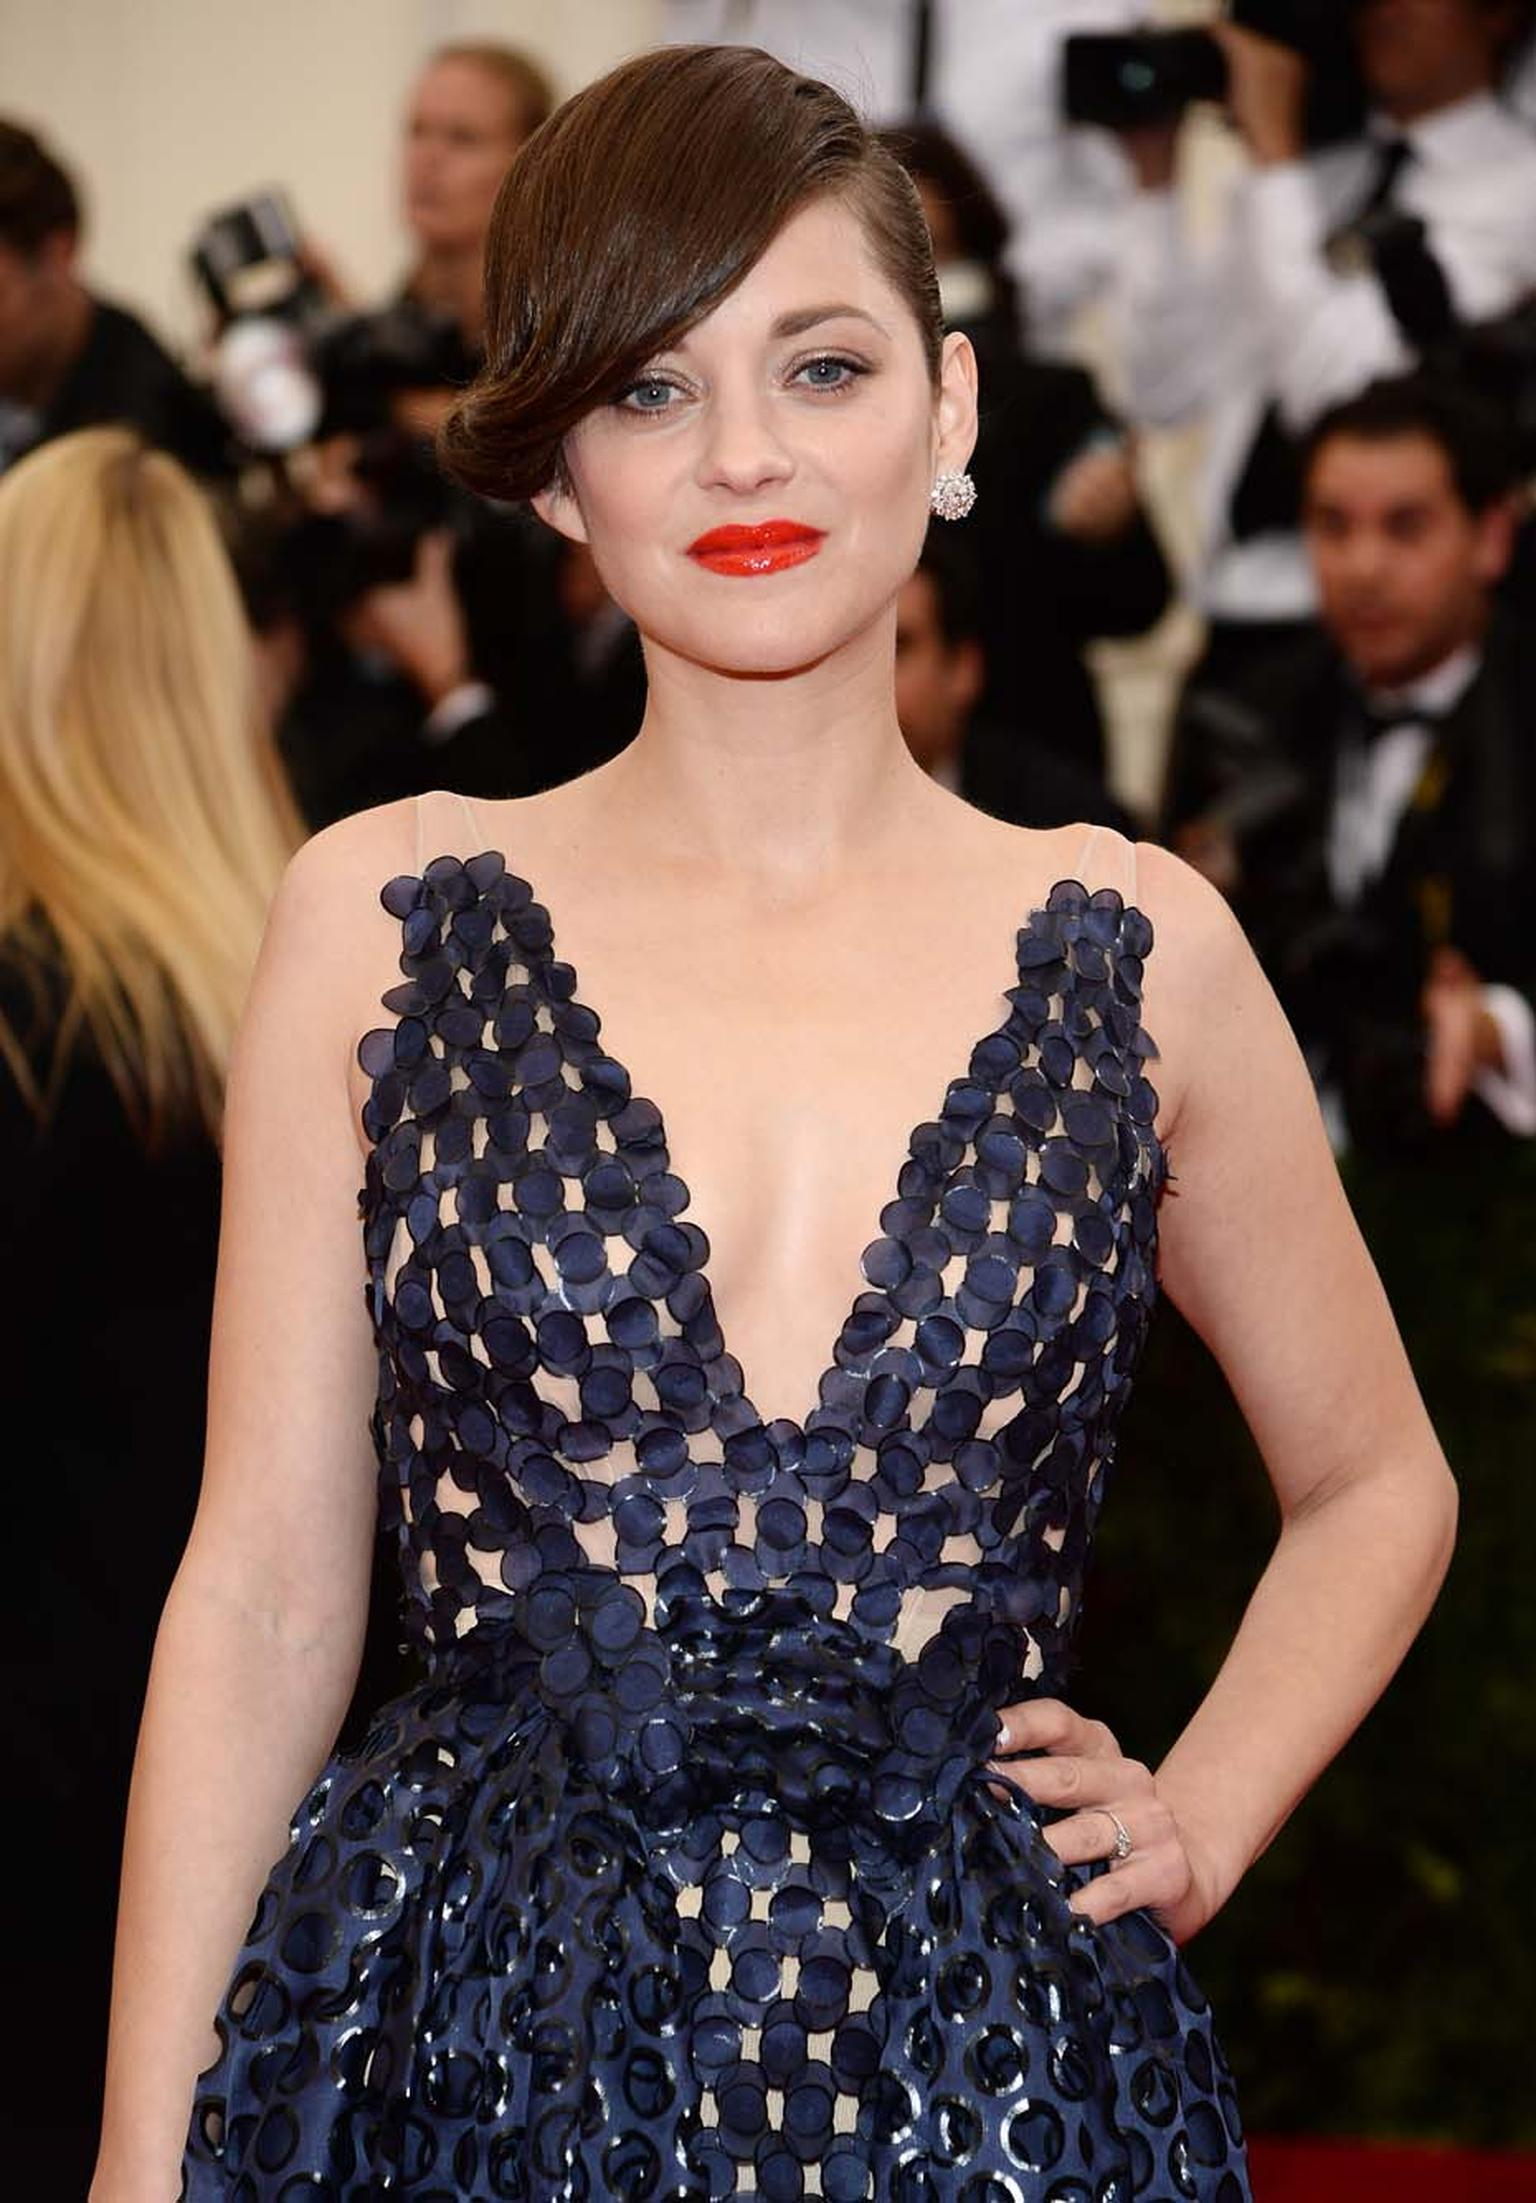 Oscar winner Marion Cotillard channelled the trend for just one earring - a platinum and diamond cluster from Chopard's platinum collection.